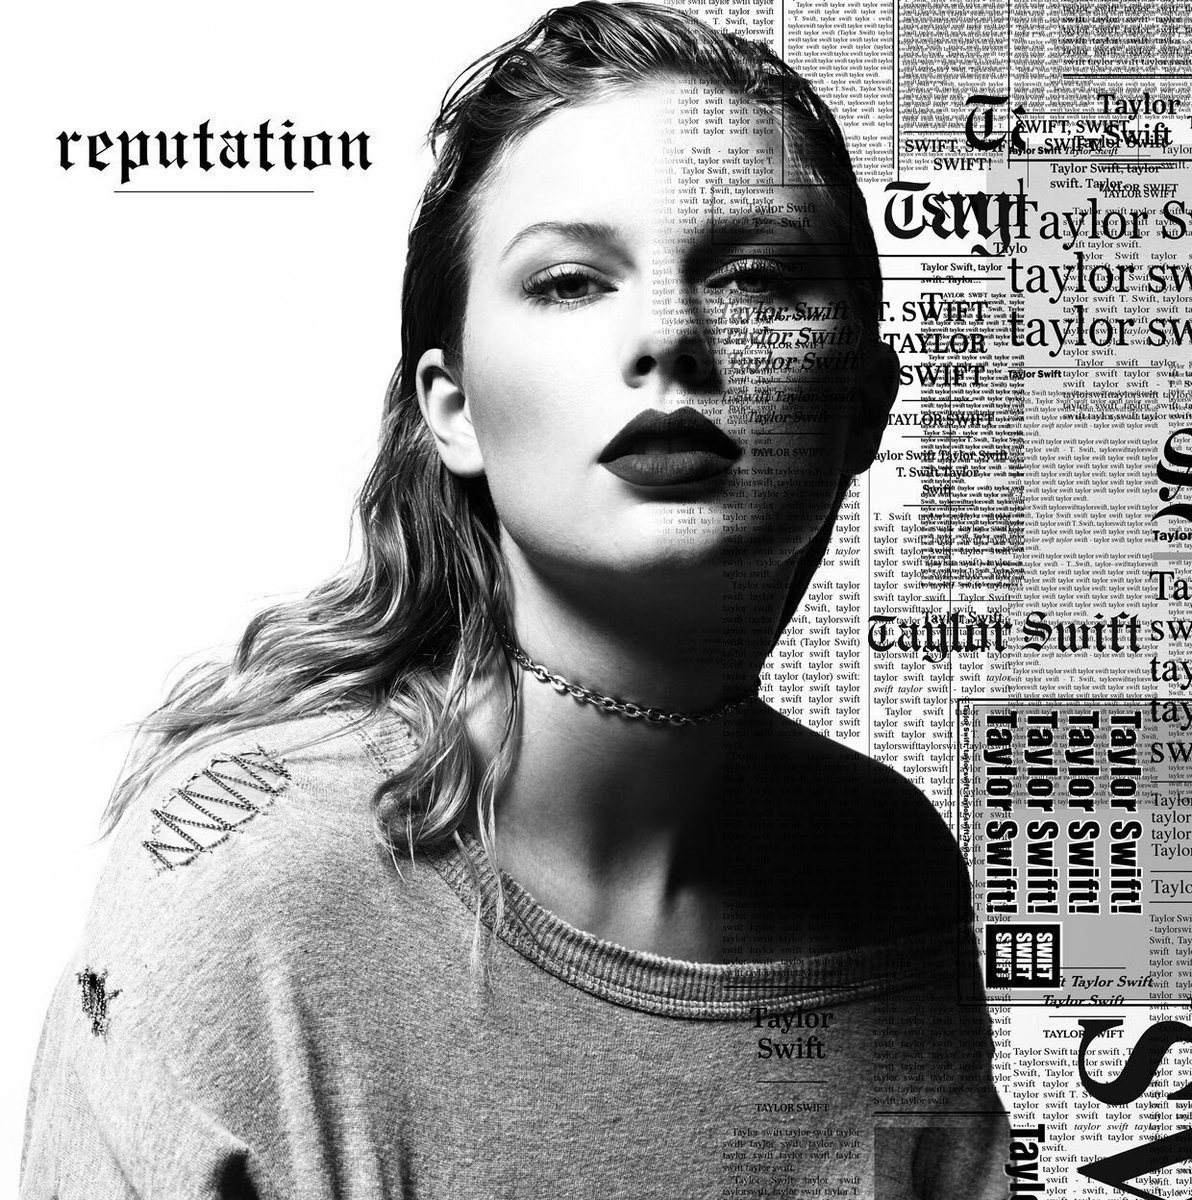 """reputation"" by @TaylorSwift13 is now the first album of 2017 to sell over 5 million copies worldwide. Her tour for the album is still the highest-grossing tour of all time in the United States."